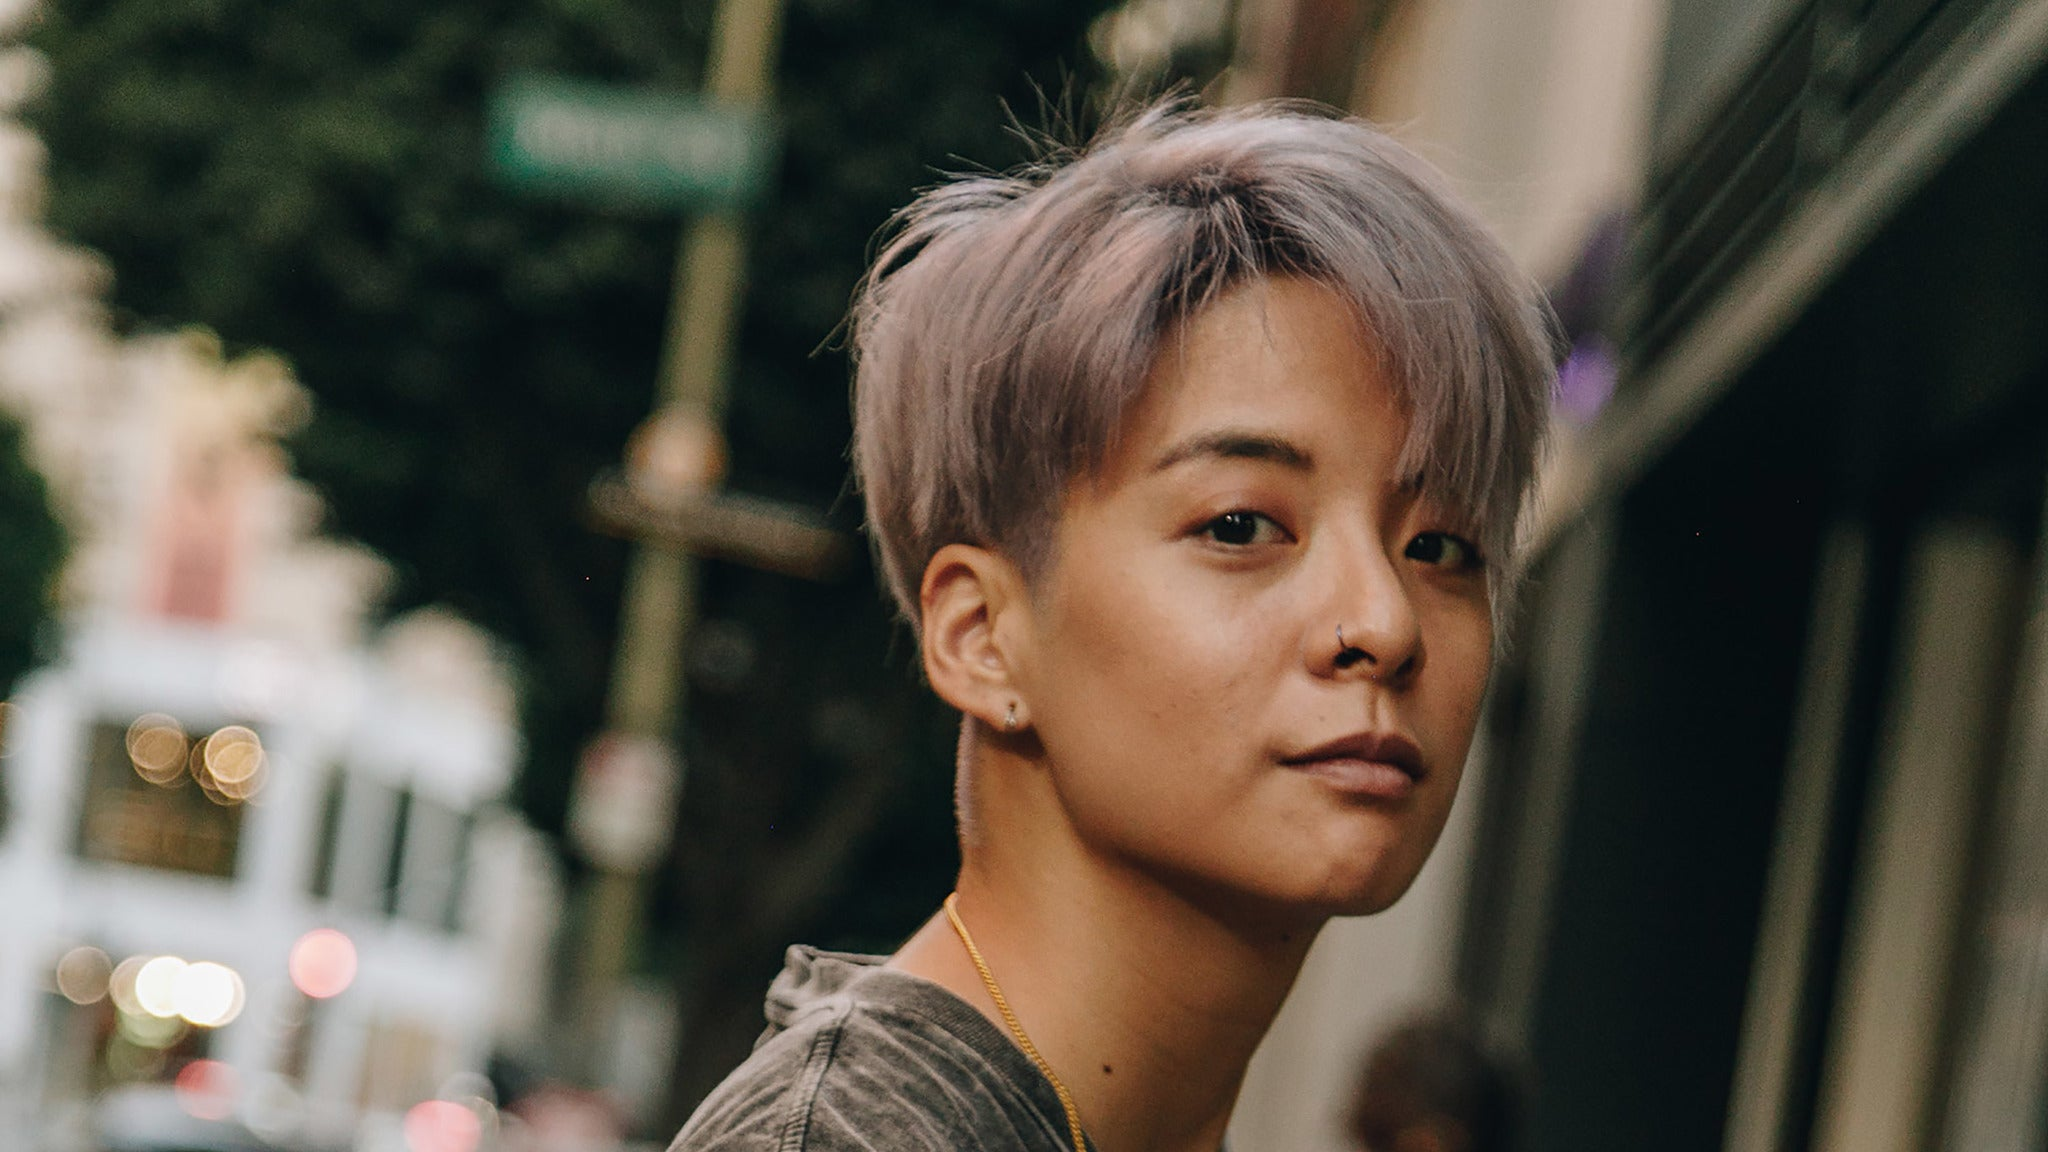 SORRY, THIS EVENT IS NO LONGER ACTIVE<br>Amber Liu Tour X at Varsity Theater - Minneapolis, MN 55414